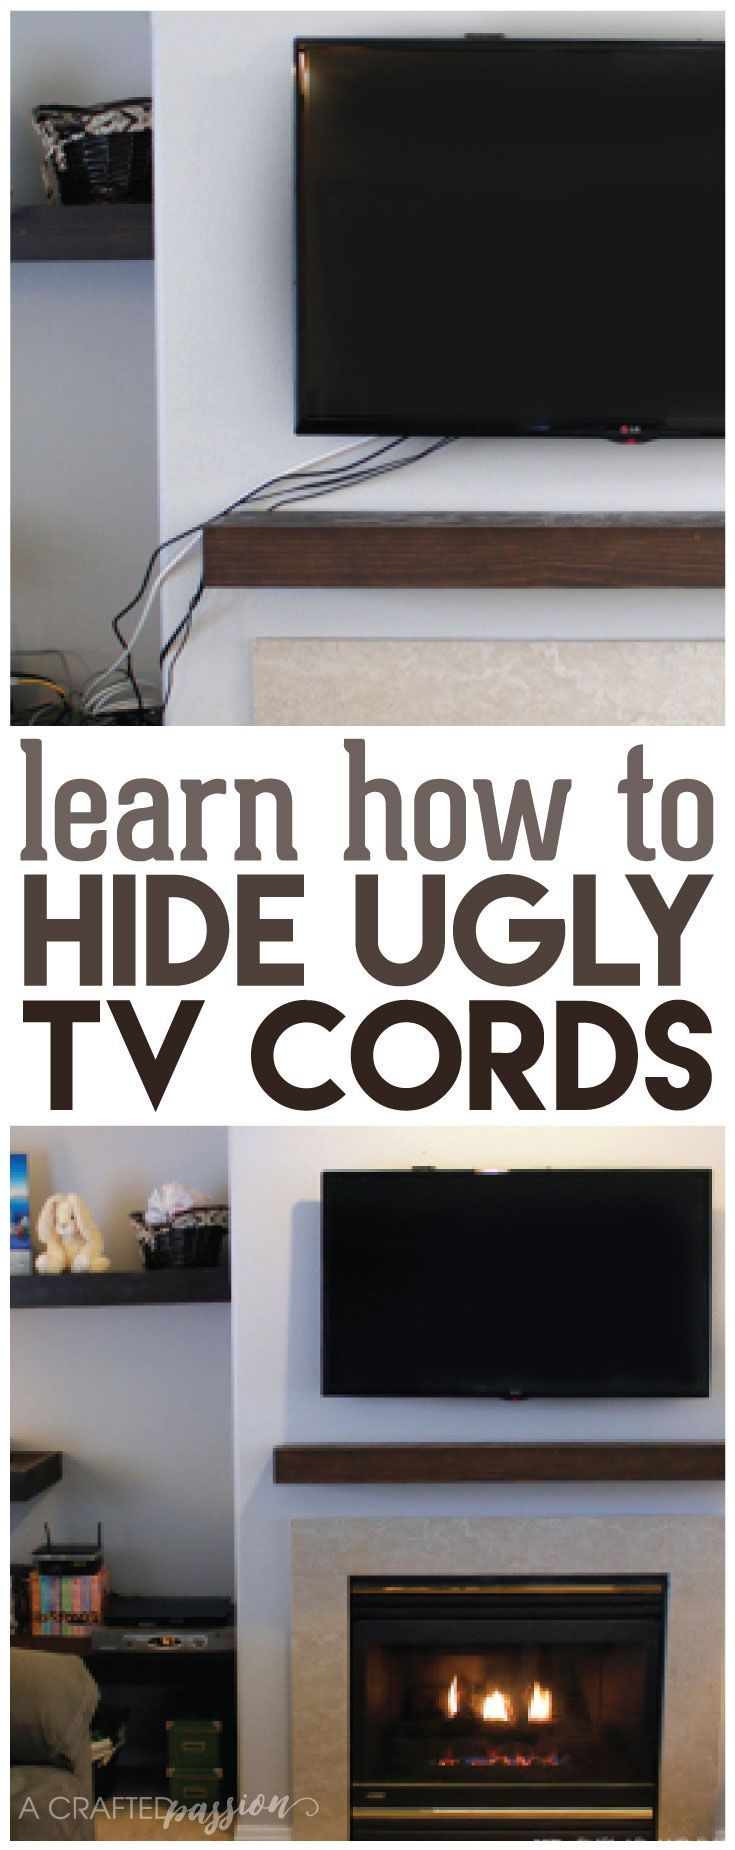 17 best ideas about hide electrical cords on pinterest for How to hide electrical cords on wall